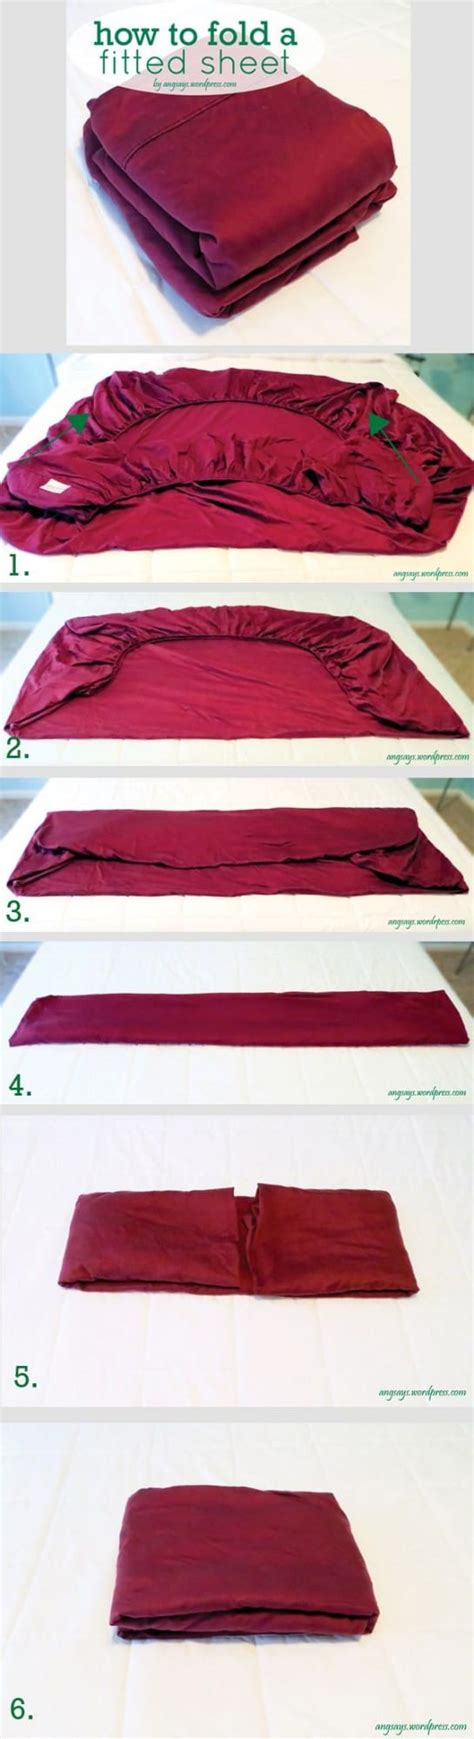 how to fold a fitted sheet easy tips and tricks